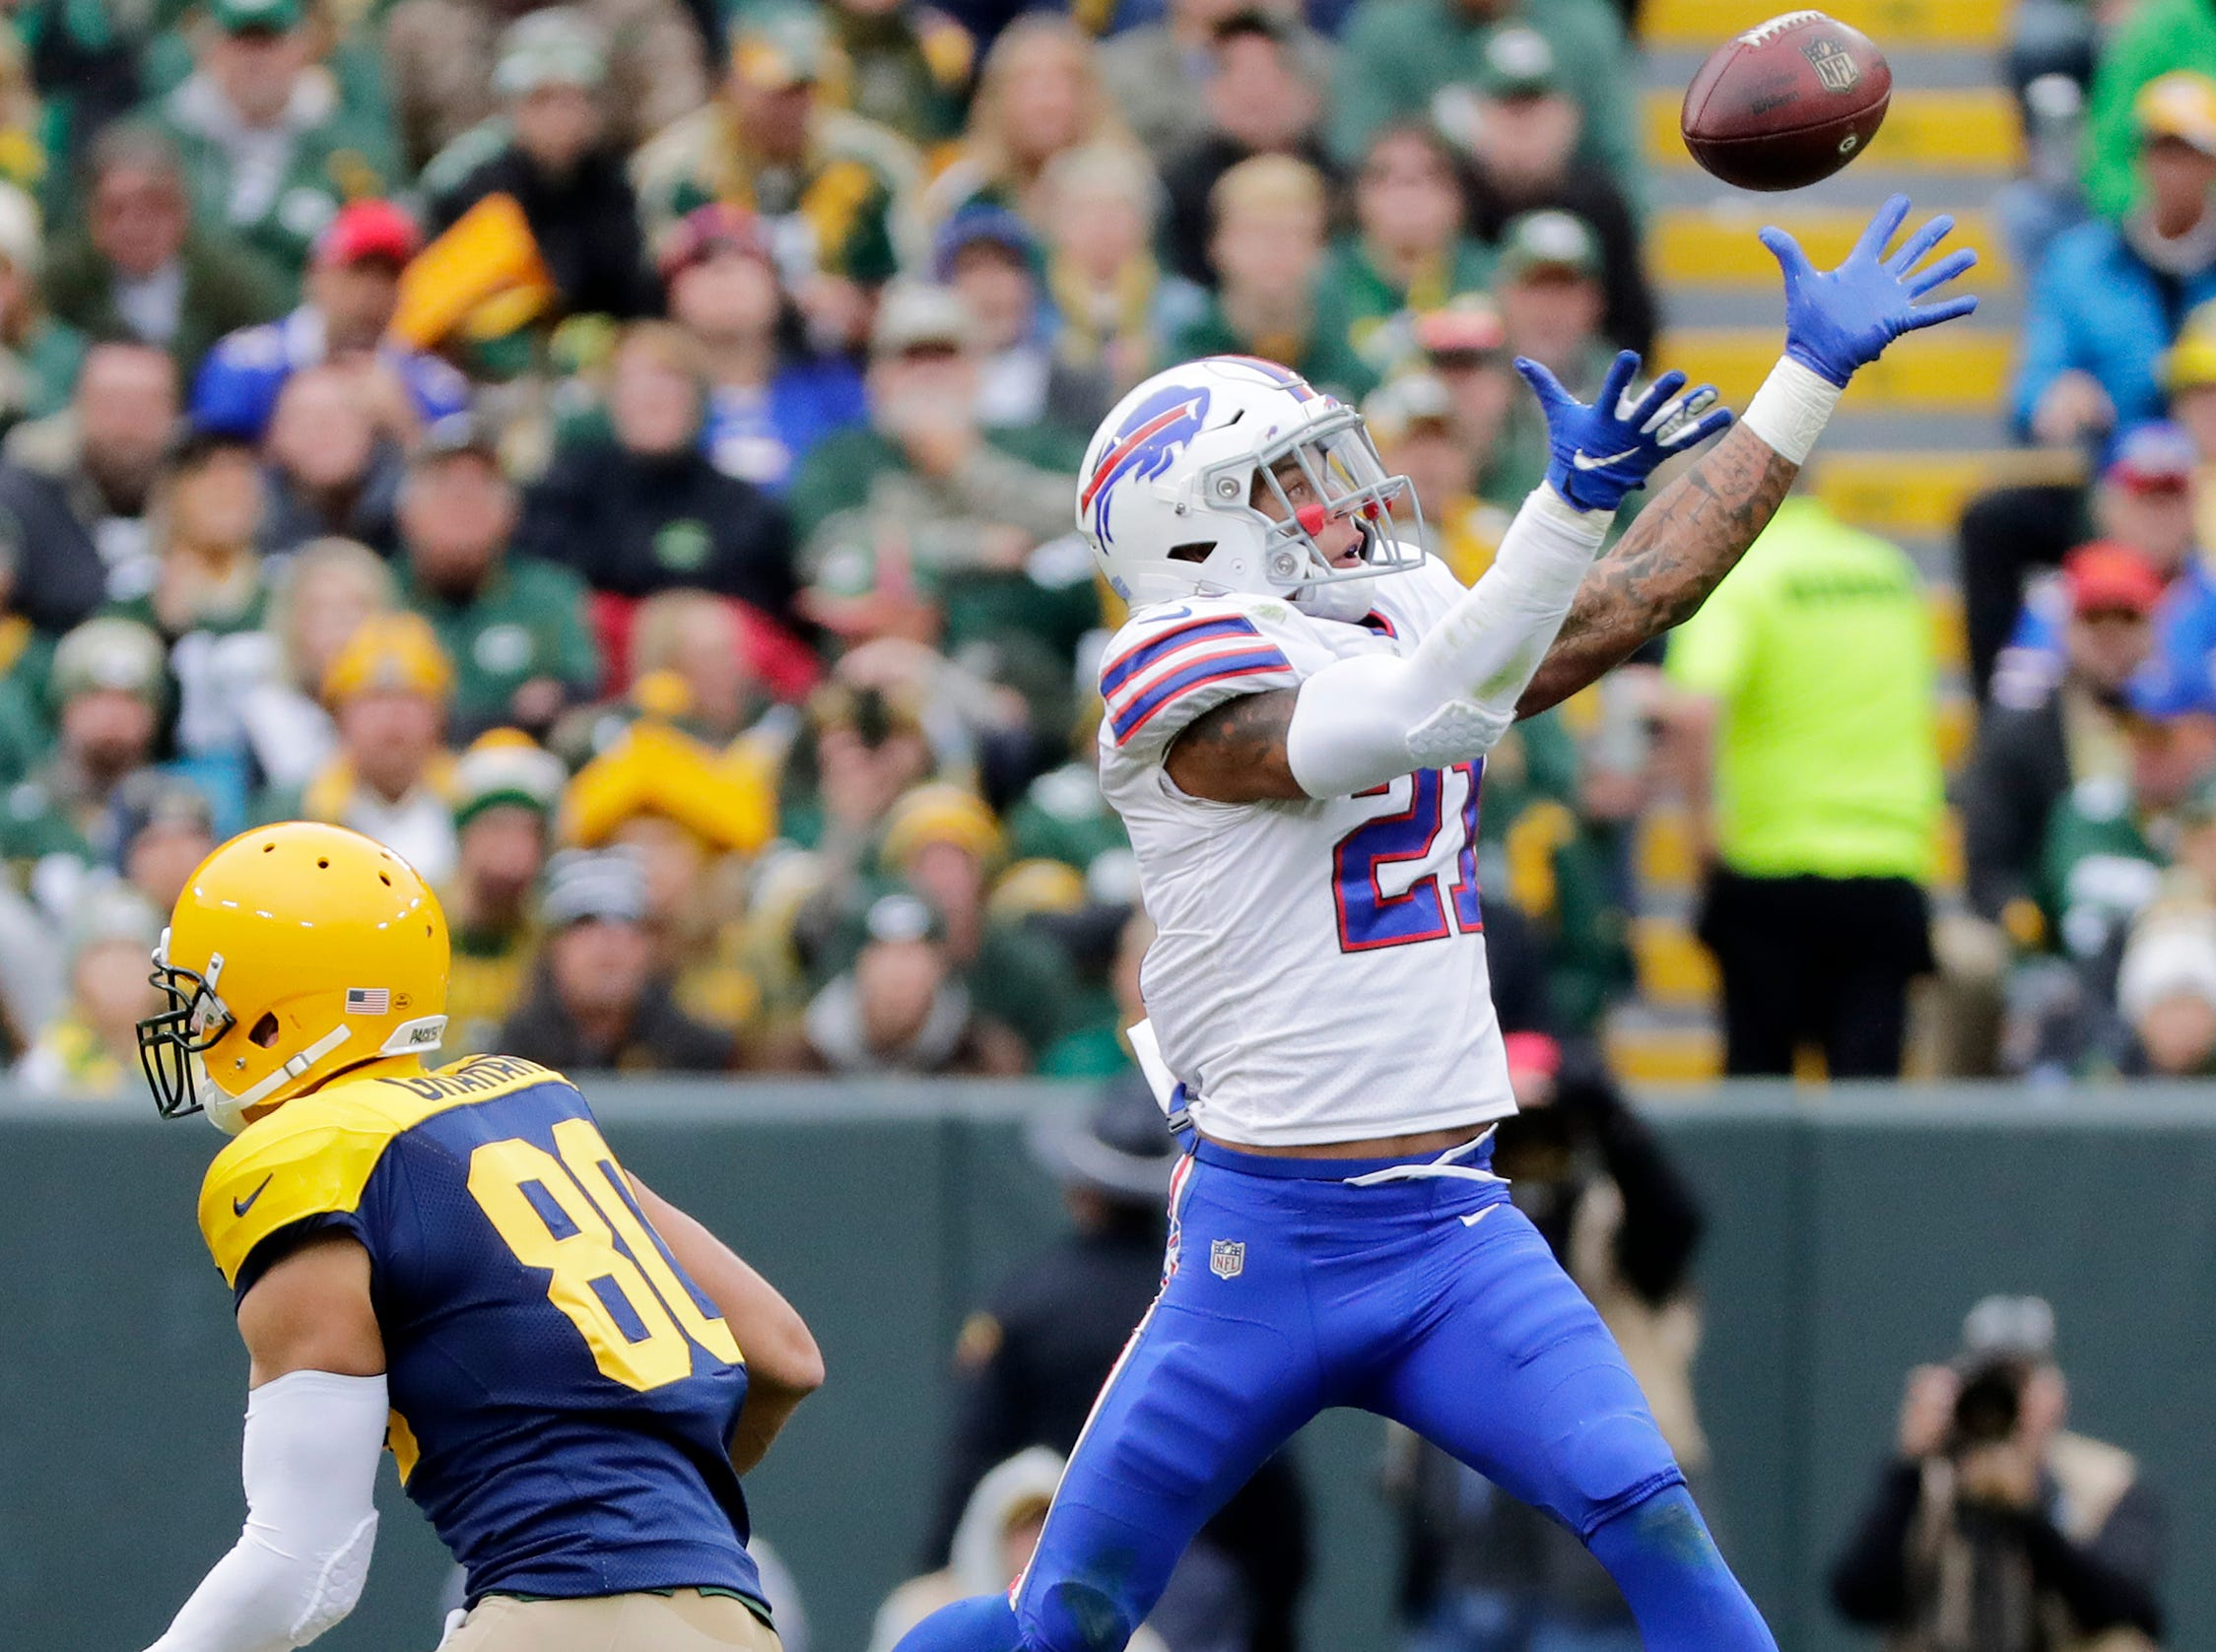 Buffalo Bills defensive back Jordan Poyer (21) intercepts a pass intended for Green Bay Packers tight end Jimmy Graham (80) in the second quarter at Lambeau Field on Sunday, September 30, 2018 in Green Bay, Wis.